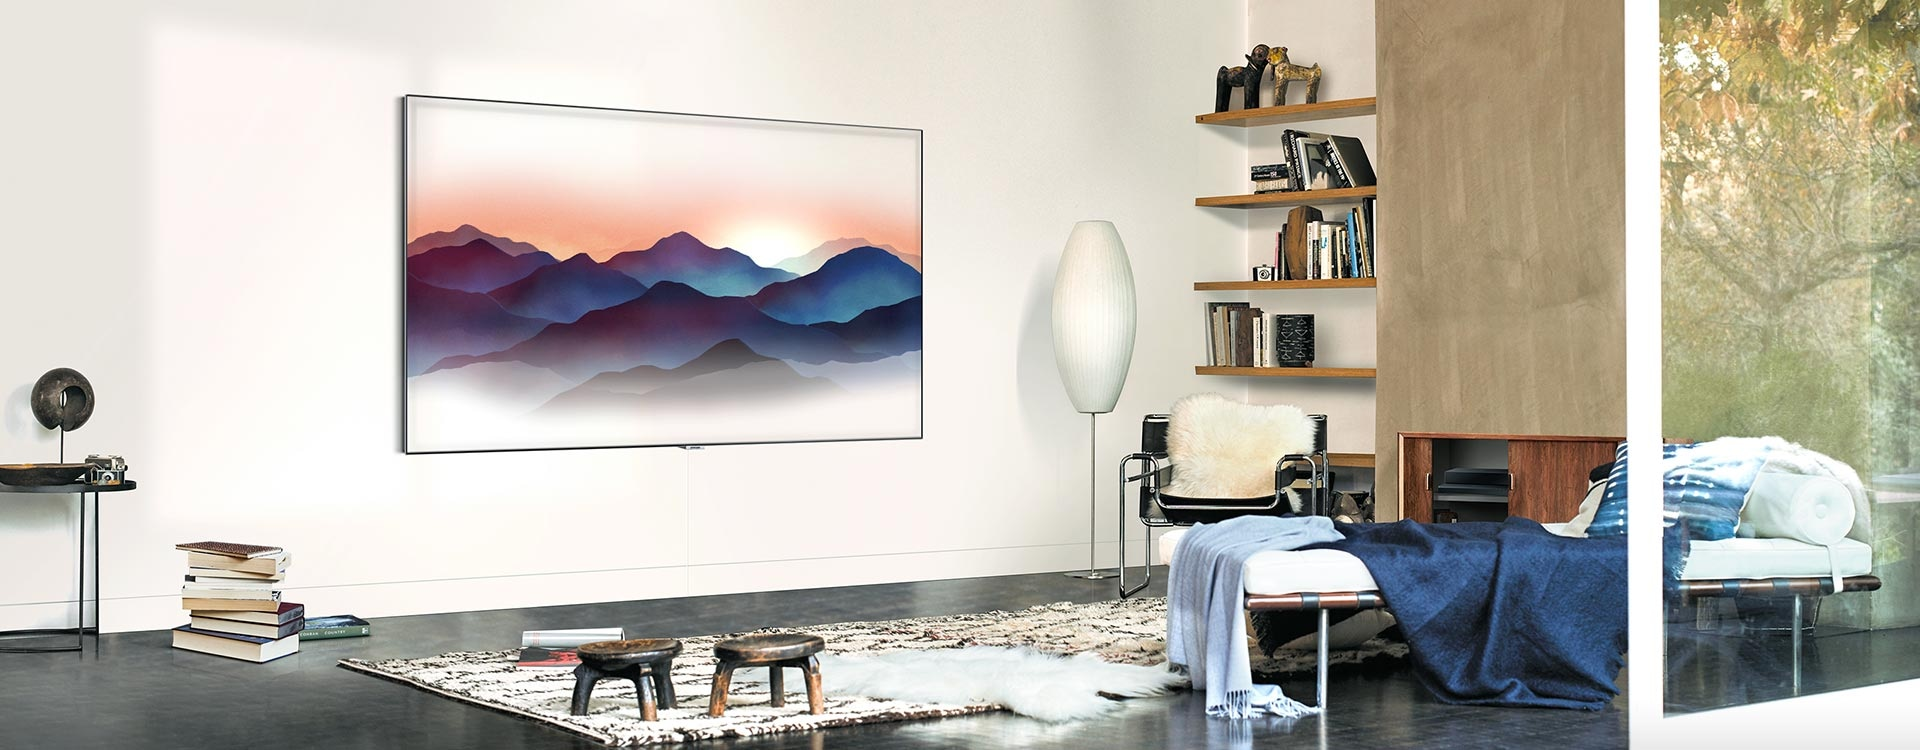 A video shows Samsung QLED TV mounted on the living room wall. A light is shown following the One Invisible connection below the TV. With One Invisible connection, the TV is perfectly blended in the space.